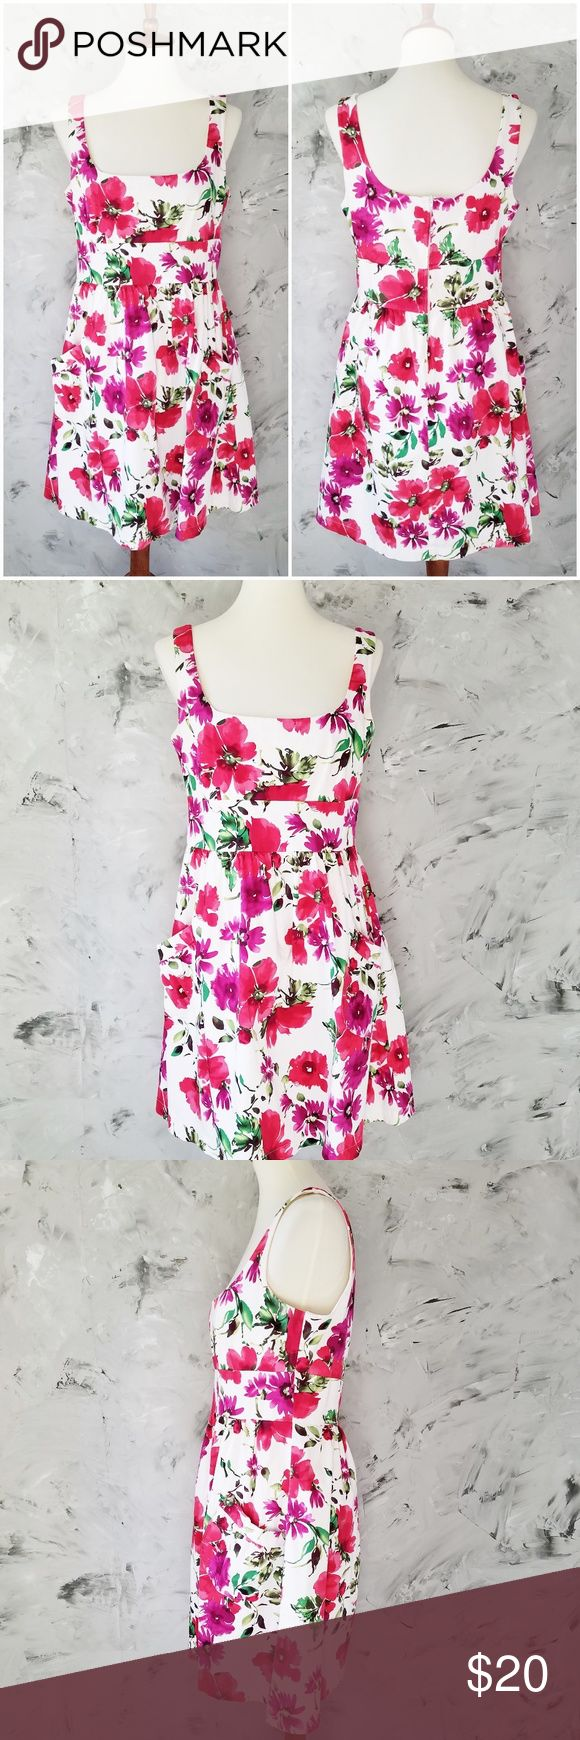 """B SMART vintage 90's Raspberry Floral Sun Dress Vintage 1990's B. Smart Pink Botanical Jumper Cocktail Sun Dress Women's Size 14 Cotton/Spandex In very good condition, gently worn, very very light underarm staining.  Wonderful big pockets!  Approximate measurements:  Length (shoulder to hem) - 35"""" Bust/Chest- 36"""" High Waist – 32""""  DISCLAIMER:  This is a second hand vintage item and so being may come with some stains, wear or undetected defects. I have tried to describe and photograph each…"""